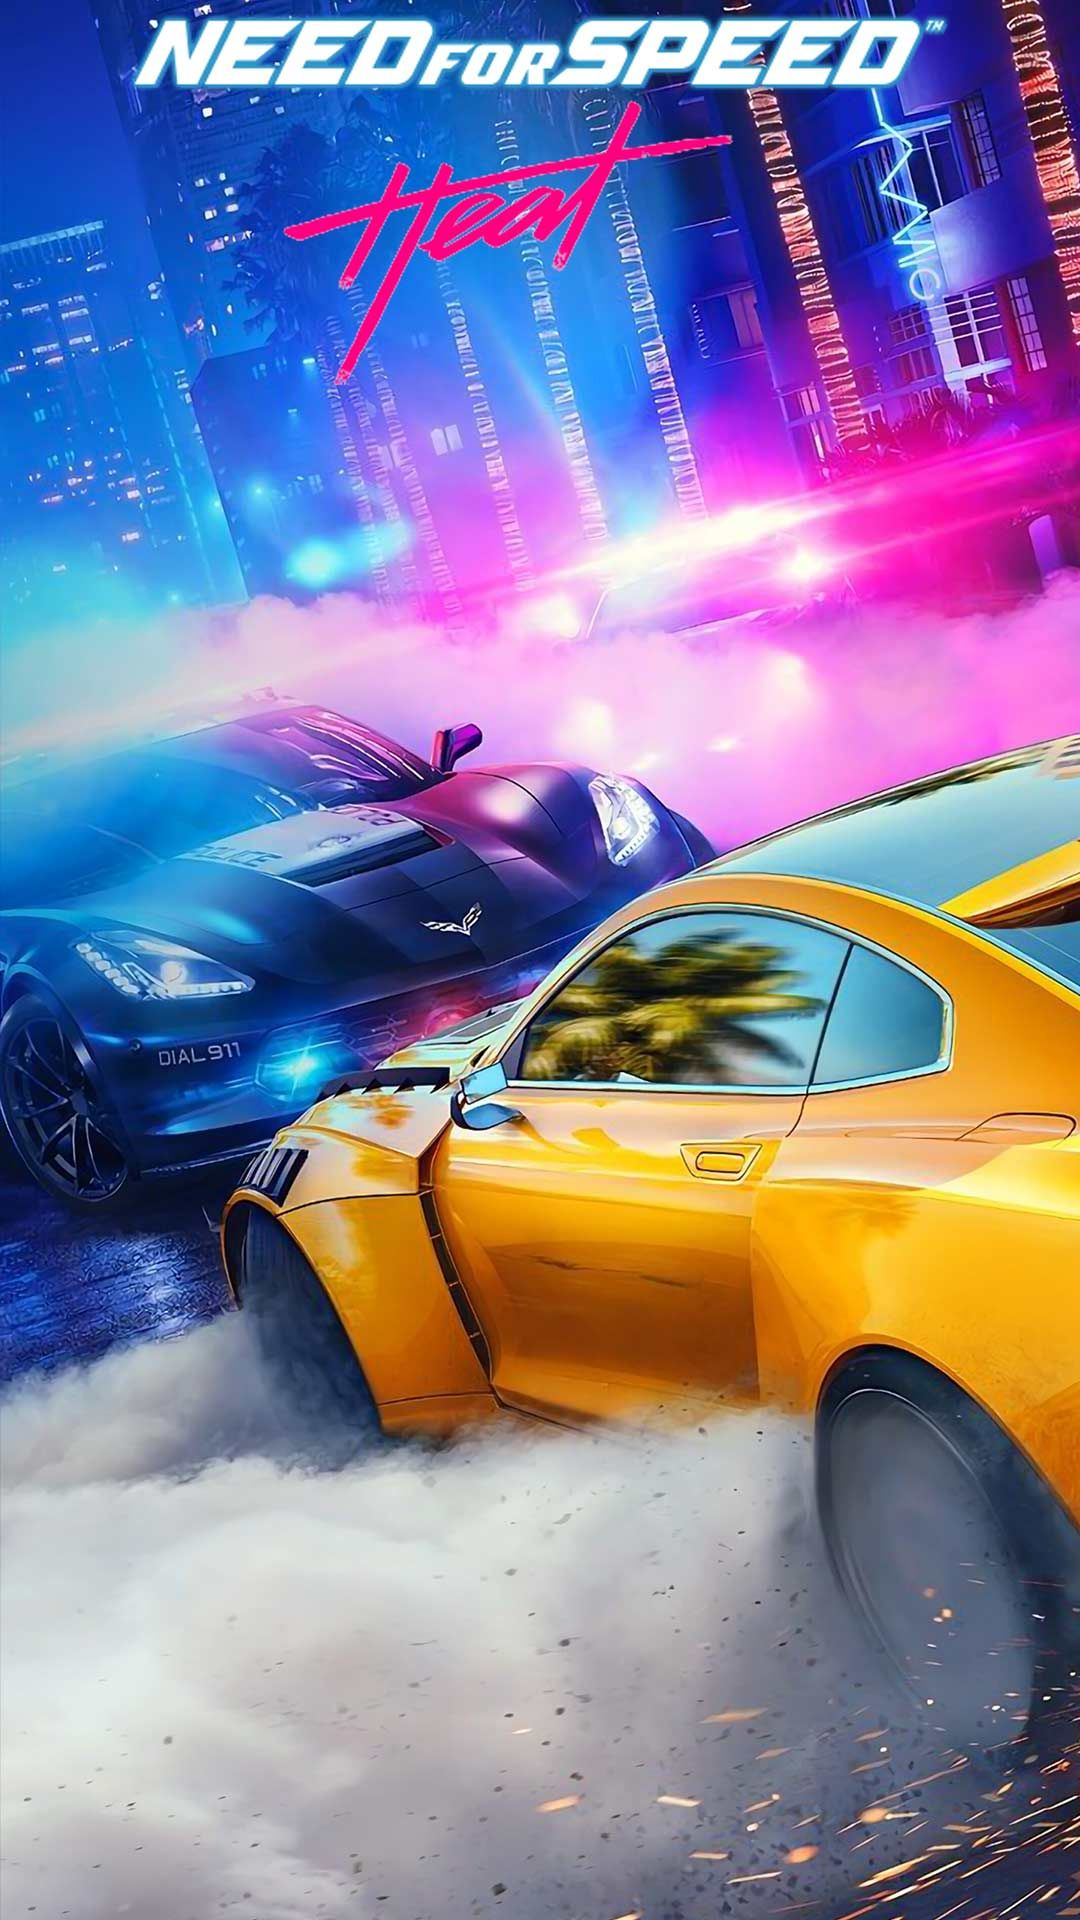 Need for speed heat wallpaper phone backgrounds for free